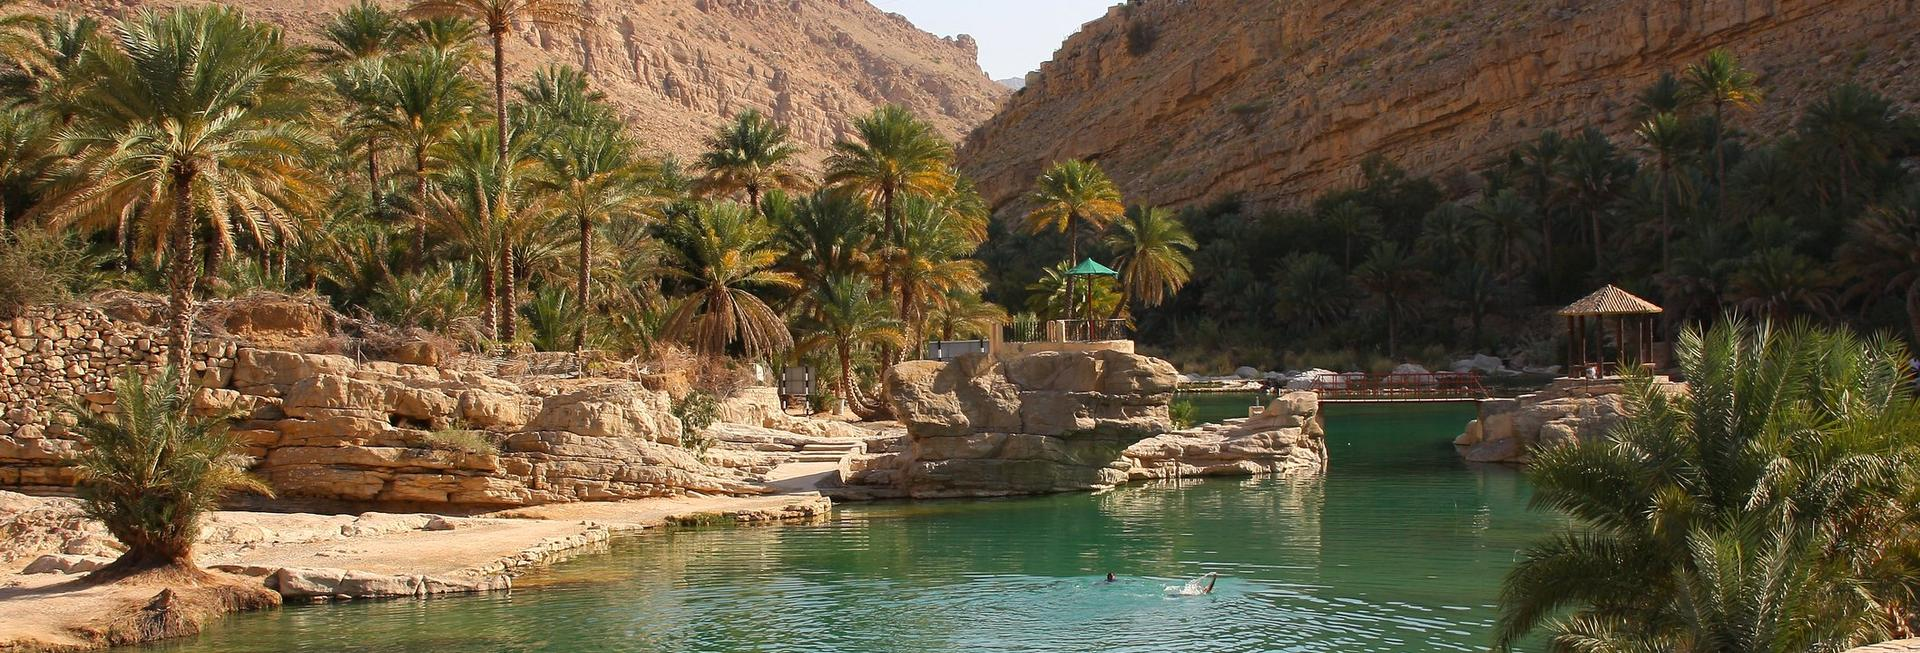 Family Adventure in Oman